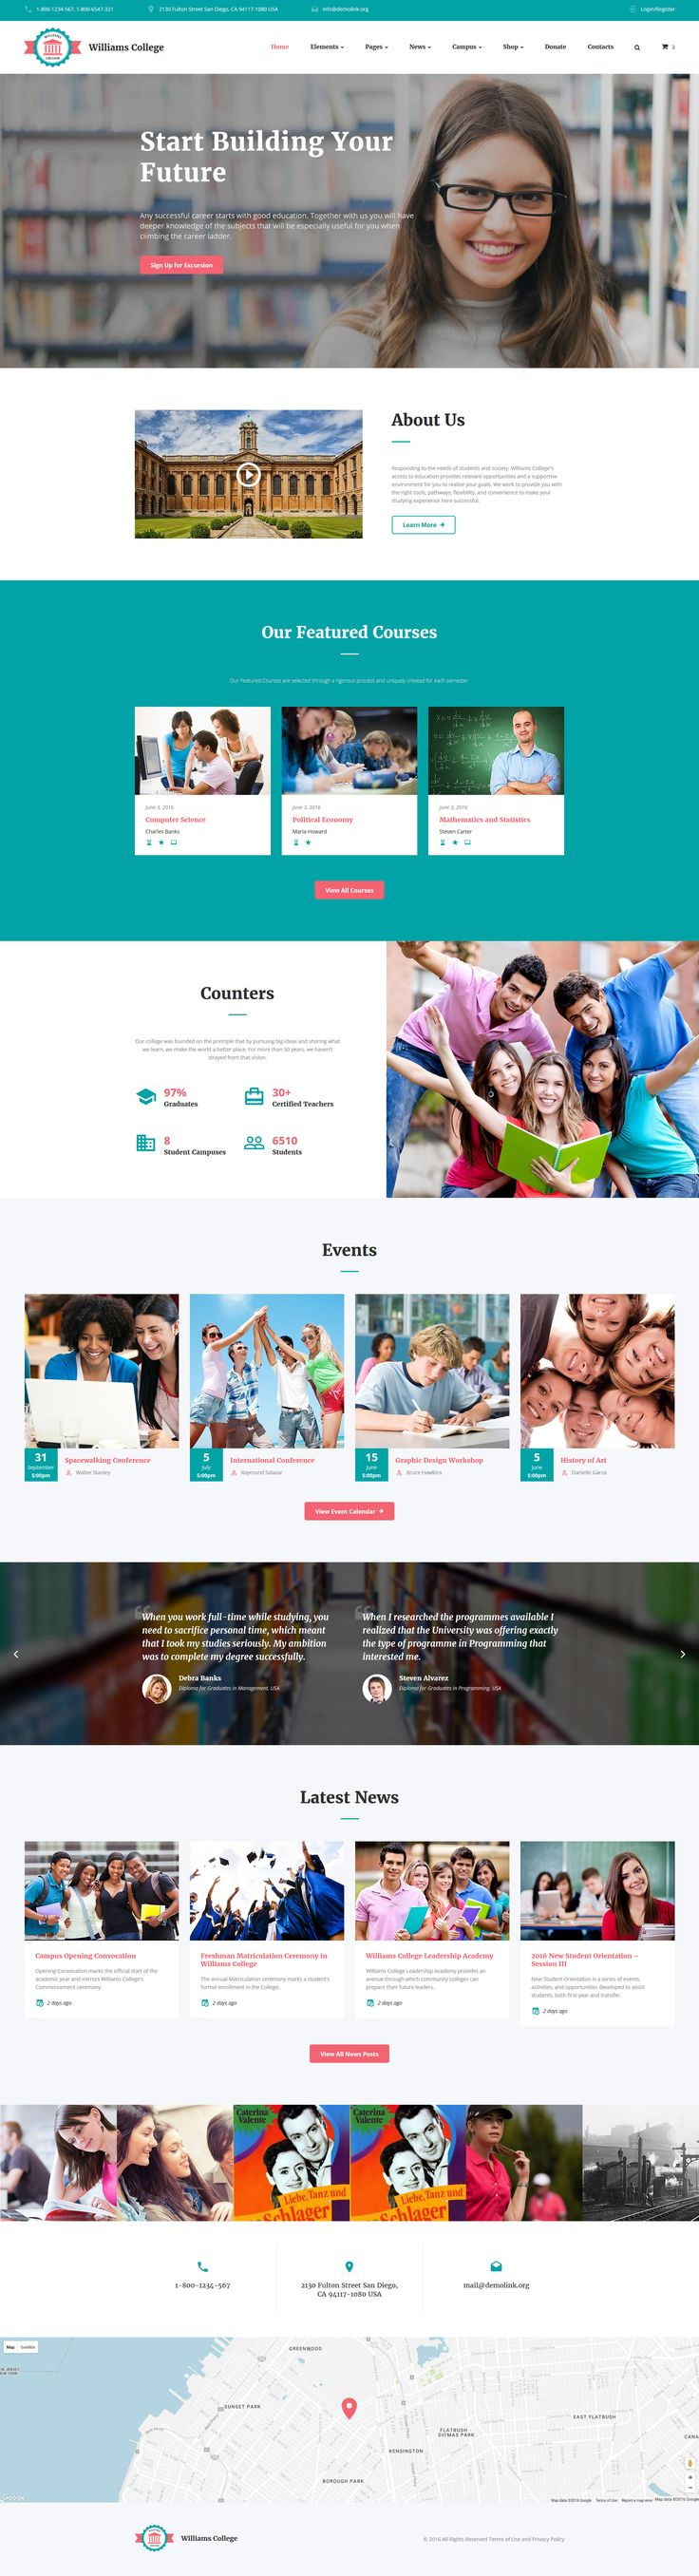 94 best education website images on Pinterest | College school ...